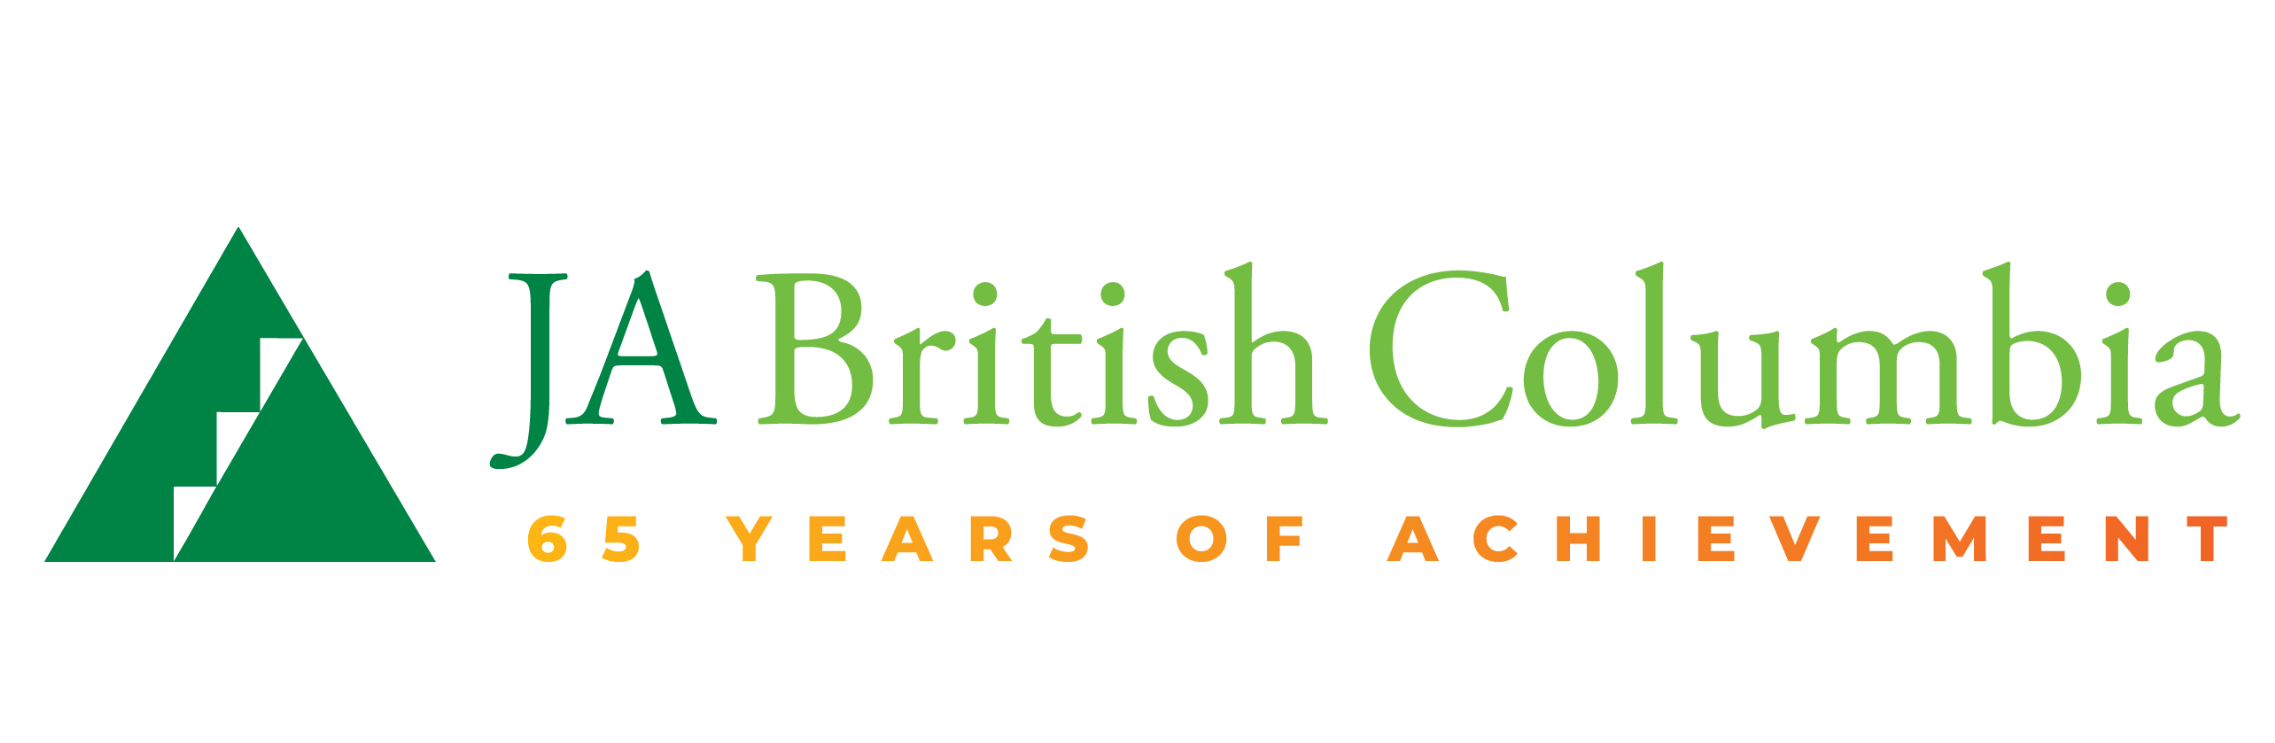 JA British Columbia (JABC) – business education for youth, develop young leaders of tomorrow Logo